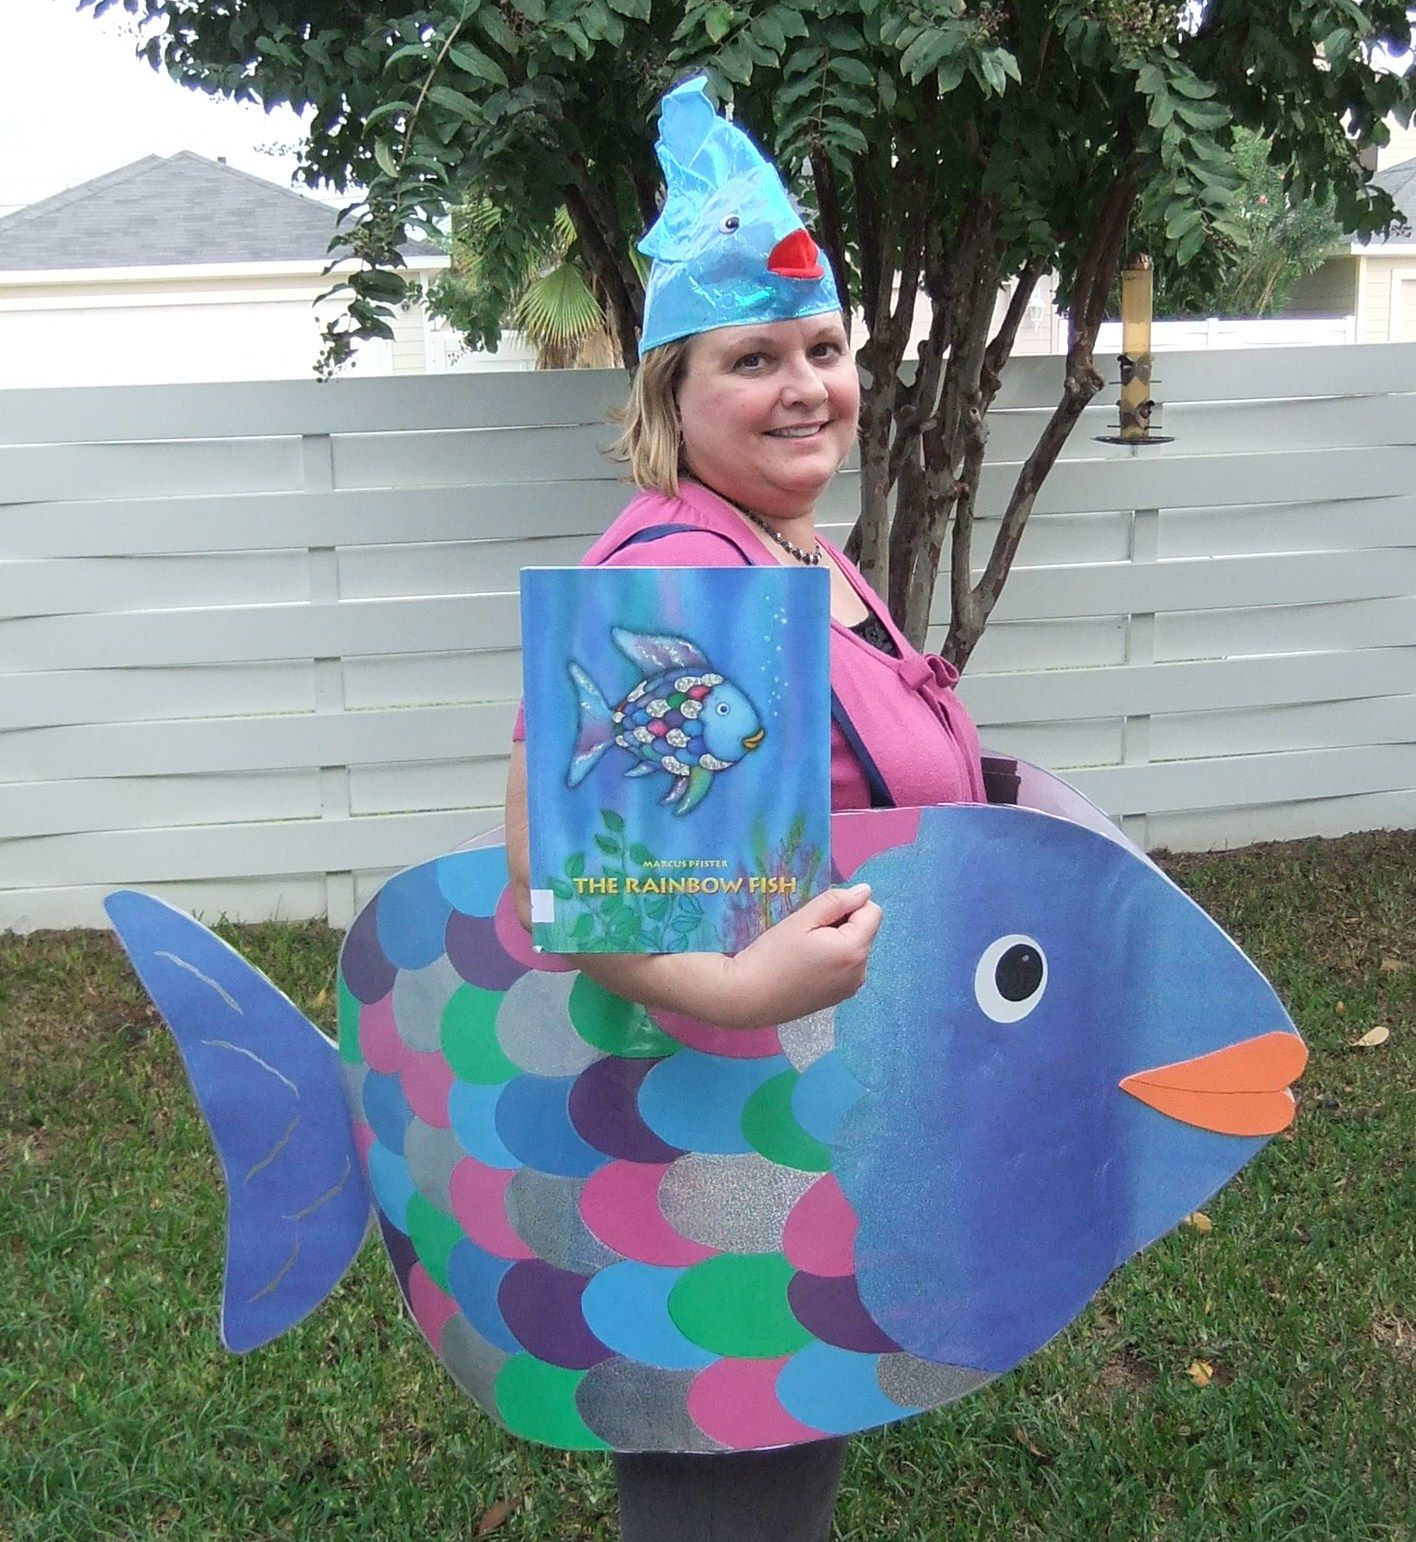 Under the sea - Rainbow Fish costume for children's book character dress up day